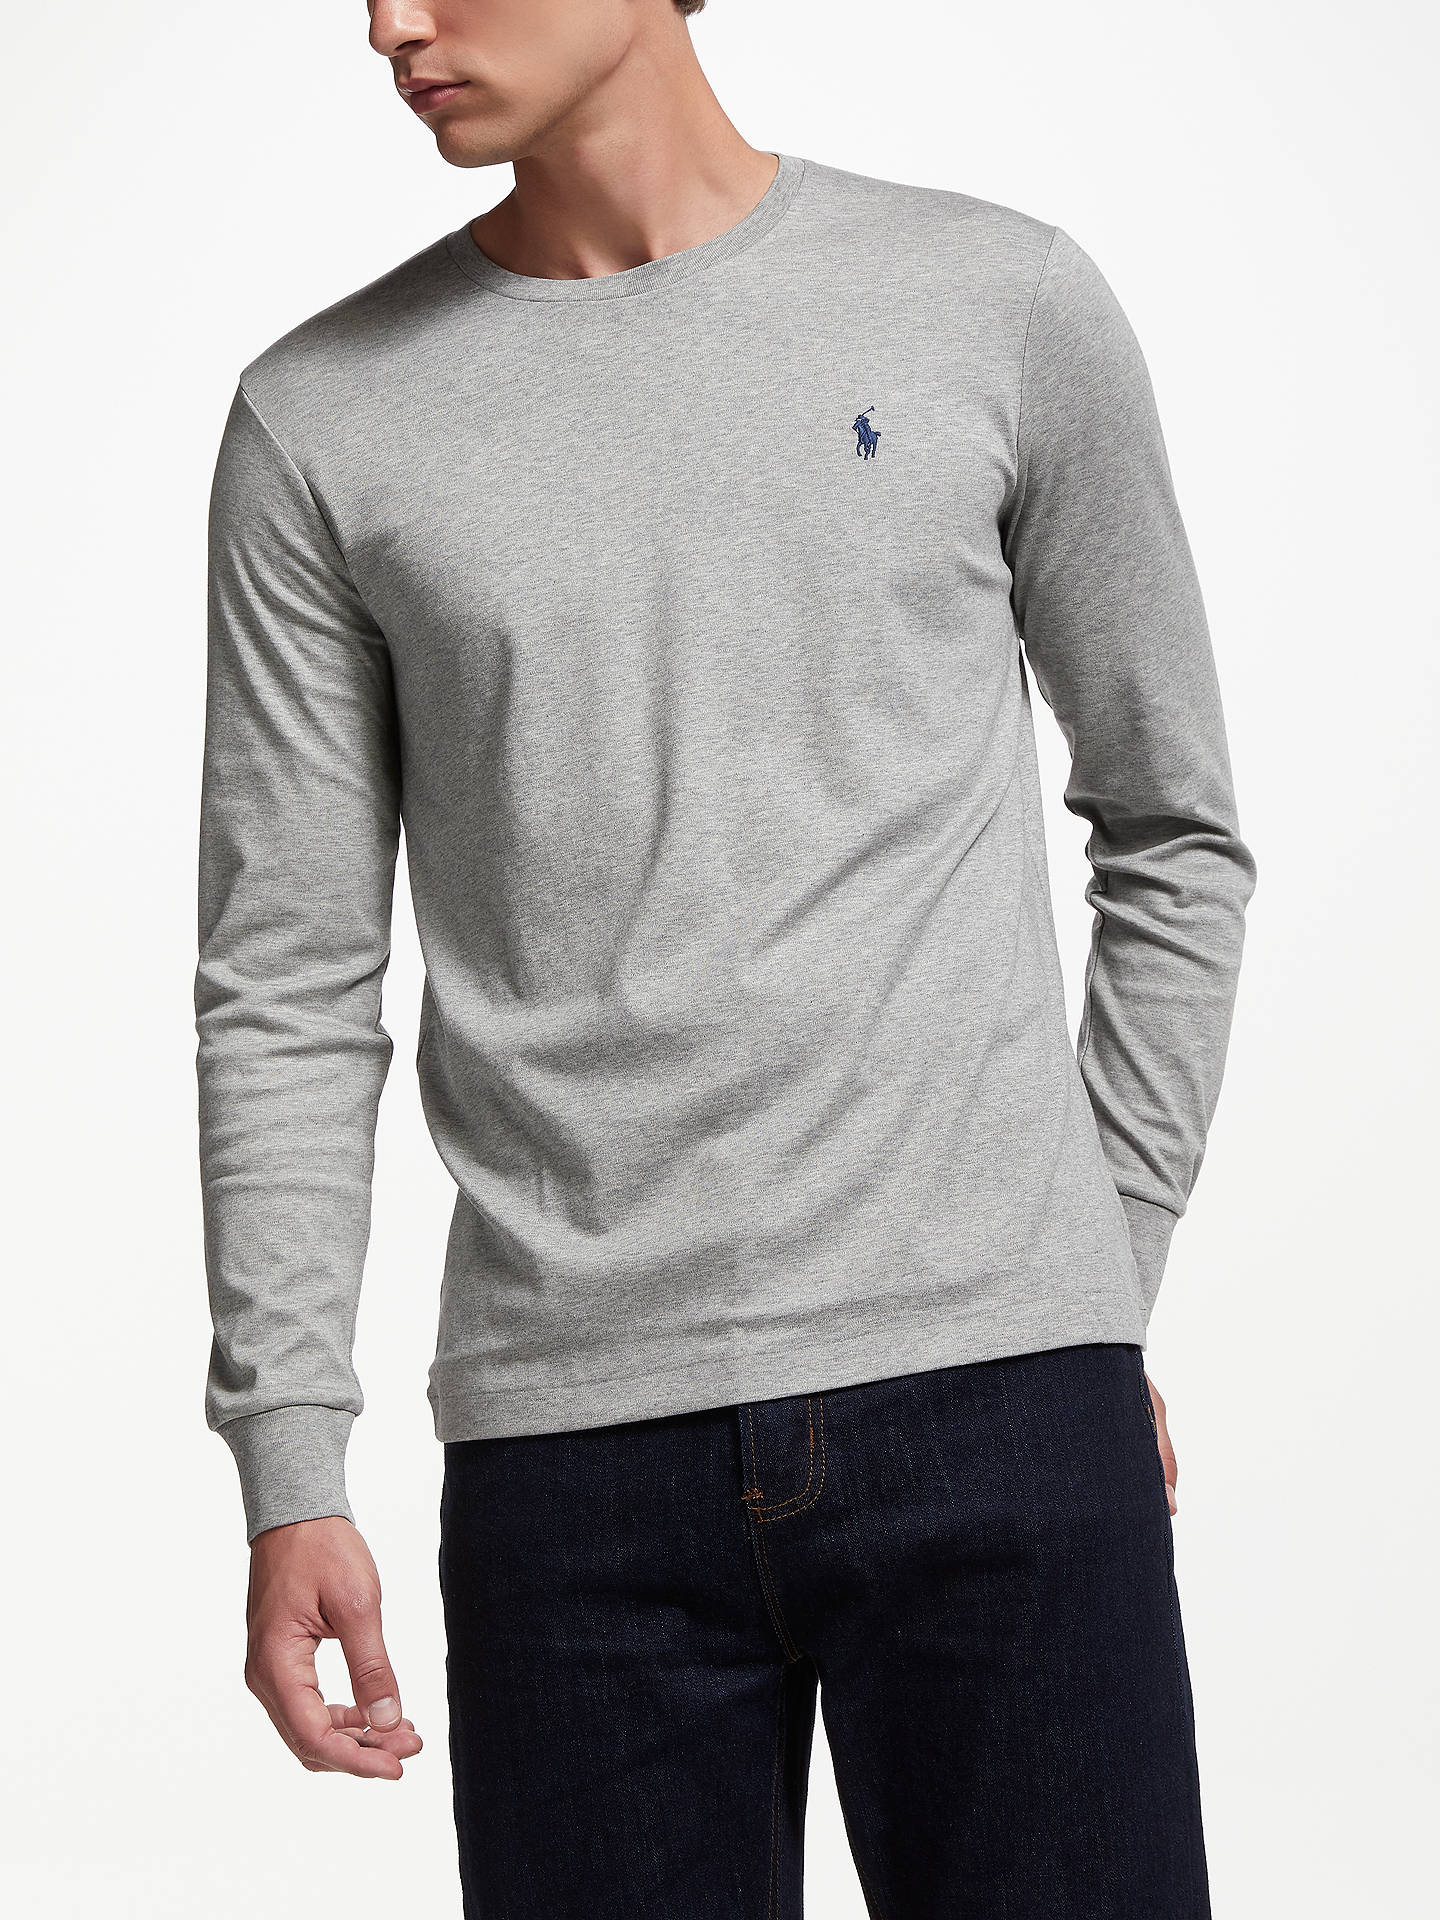 fe4647db7 Buy Polo Ralph Lauren Long Sleeve T-Shirt, Grey, S Online at johnlewis ...